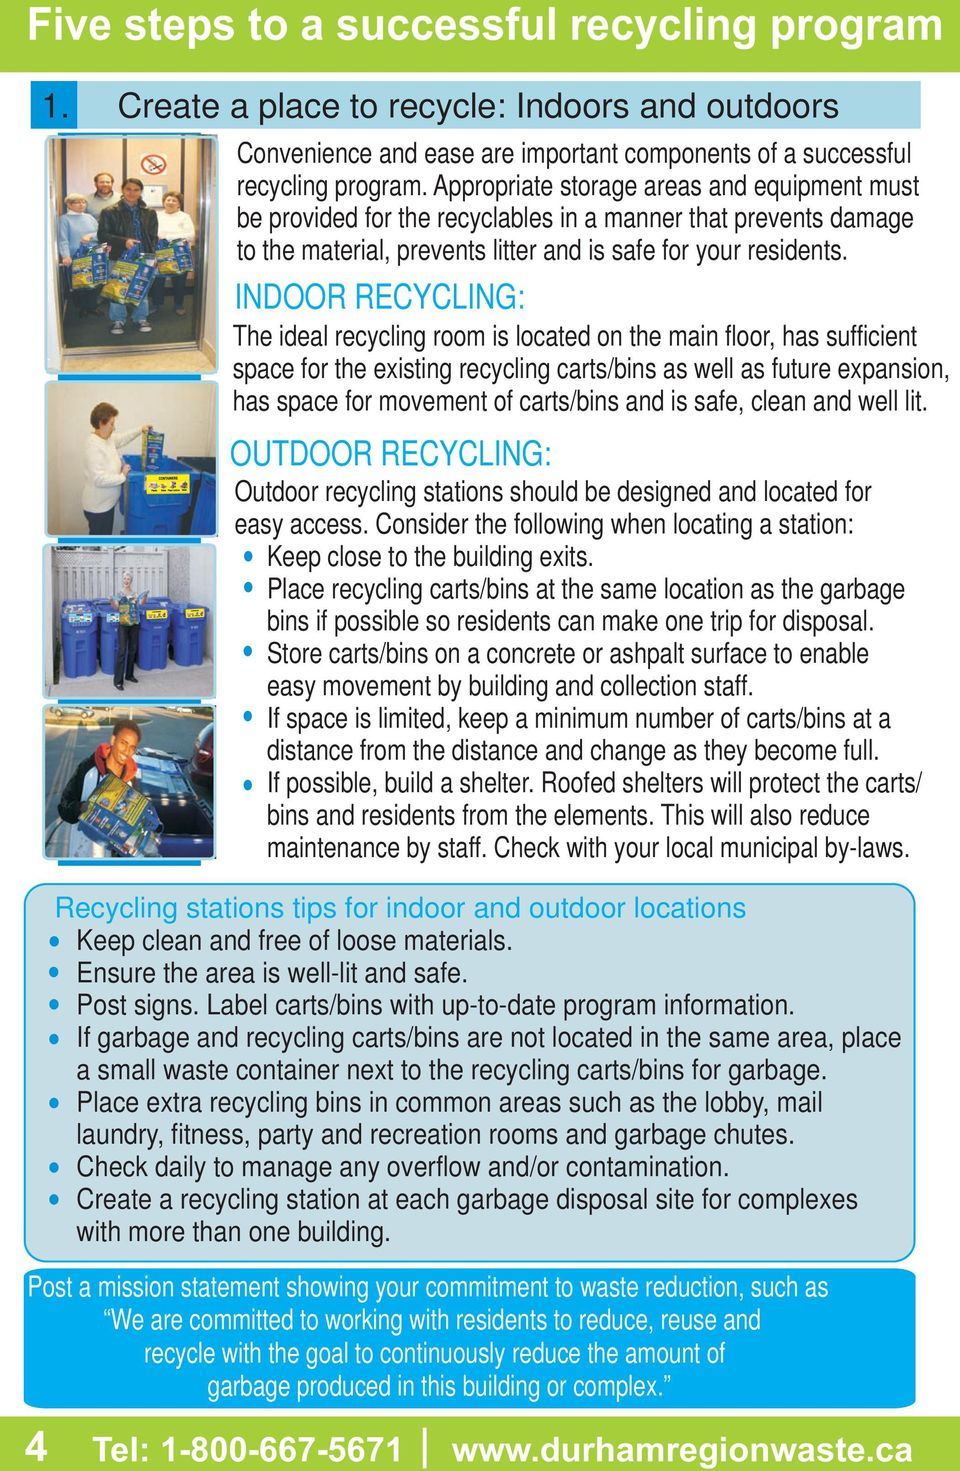 INDOOR RECYCLING: The ideal recycling room is located on the main floor, has sufficient space for the existing recycling carts/bins as well as future expansion, has space for movement of carts/bins